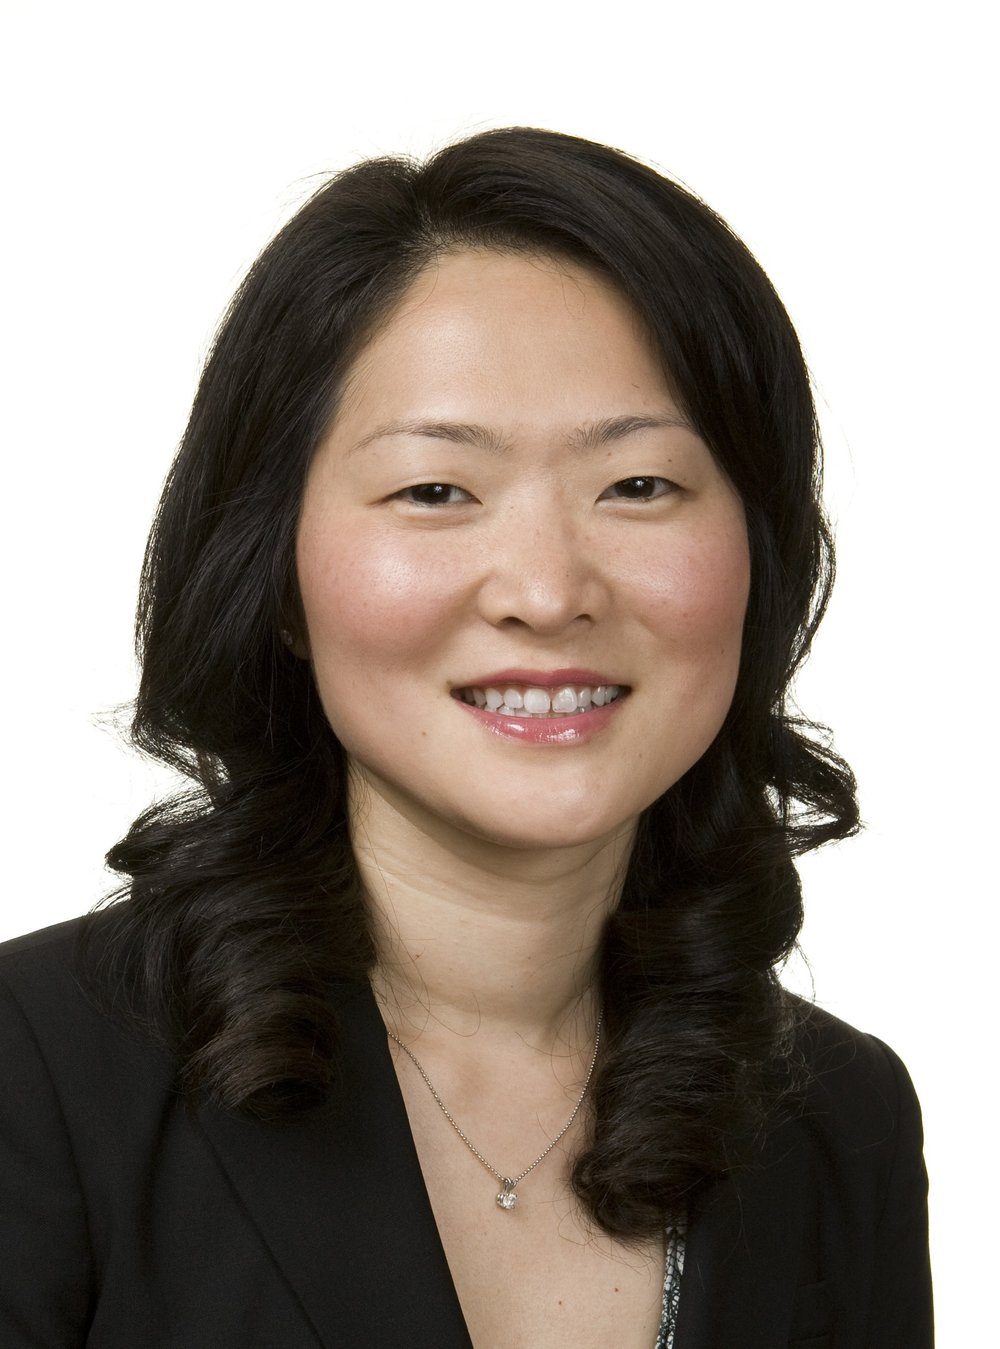 Cathy Hwang Dr. Catherine Hwang is an Orbital & Oculofacial plastic surgeon at the Cole Eye Institute at the Cleveland Clinic Foundation.  Dr. Hwang completed her training at the University of Pennsylvania as well as the University of California, Los Angeles. She practiced in Los Angeles and Beverly Hills and was an Assistant Clinical Professor at UCLA from 201-2016. She is an active member of the American Society of Oculoplastic and Reconstructive Surgery, American Academy of Ophthalomology,  and the American Academy of Cosmetic Surgery. Dr. Hwang has travelled nationally and internationally lecturing on botulinum toxin, fillers, filler complications and eyelid surgery.  She is also an active researcher investigating functional and cosmetic eyelid and orbital disorders.